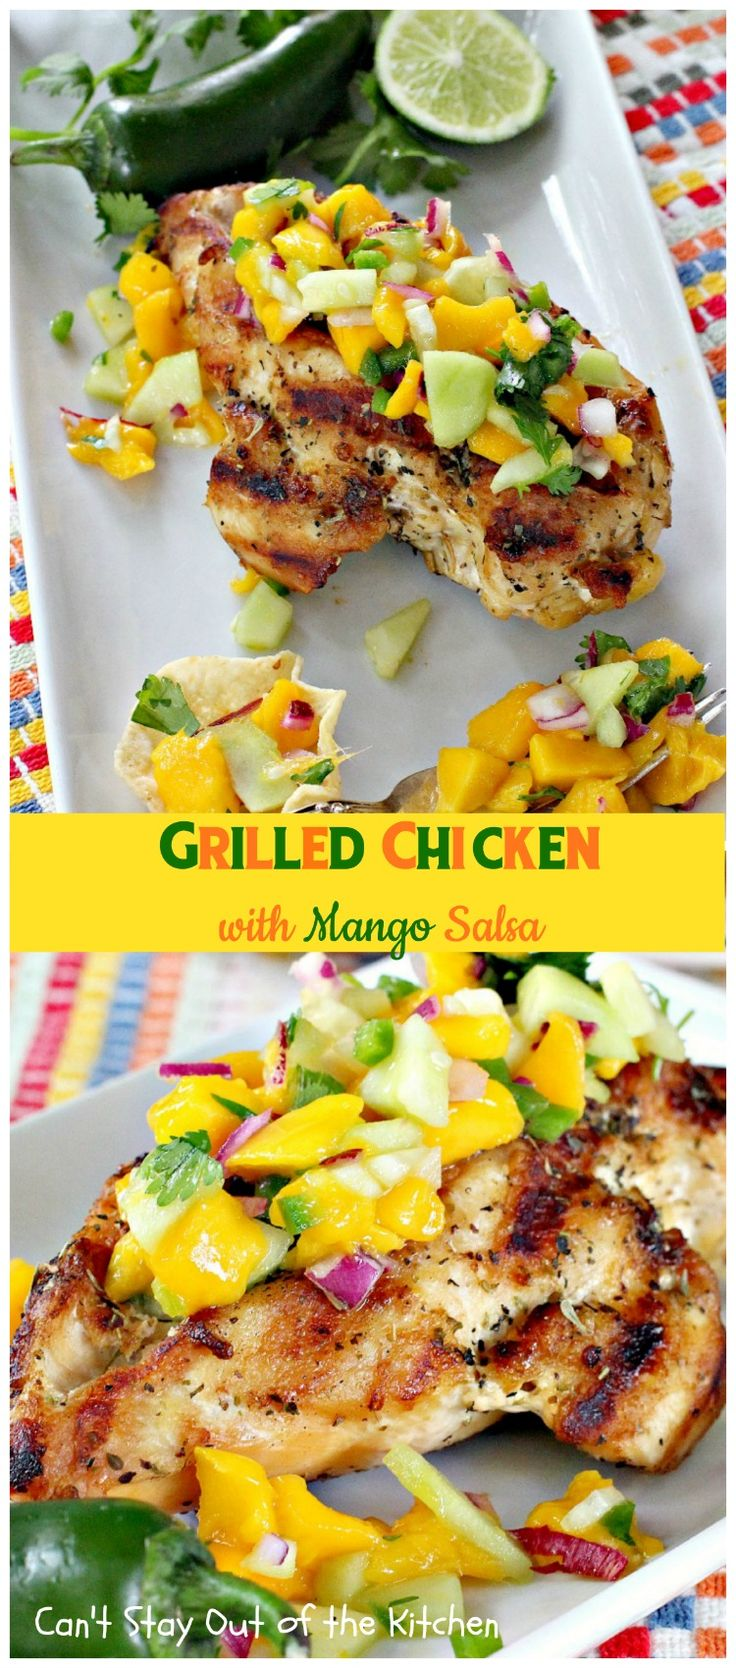 Grilled Chicken with Mango Salsa   Can't Stay Out of the Kitchen   incredibly easy & tasty #chicken entree. Refreshing summer fare that's healthy and low calorie with homemade #mango #salsa. #glutenfree